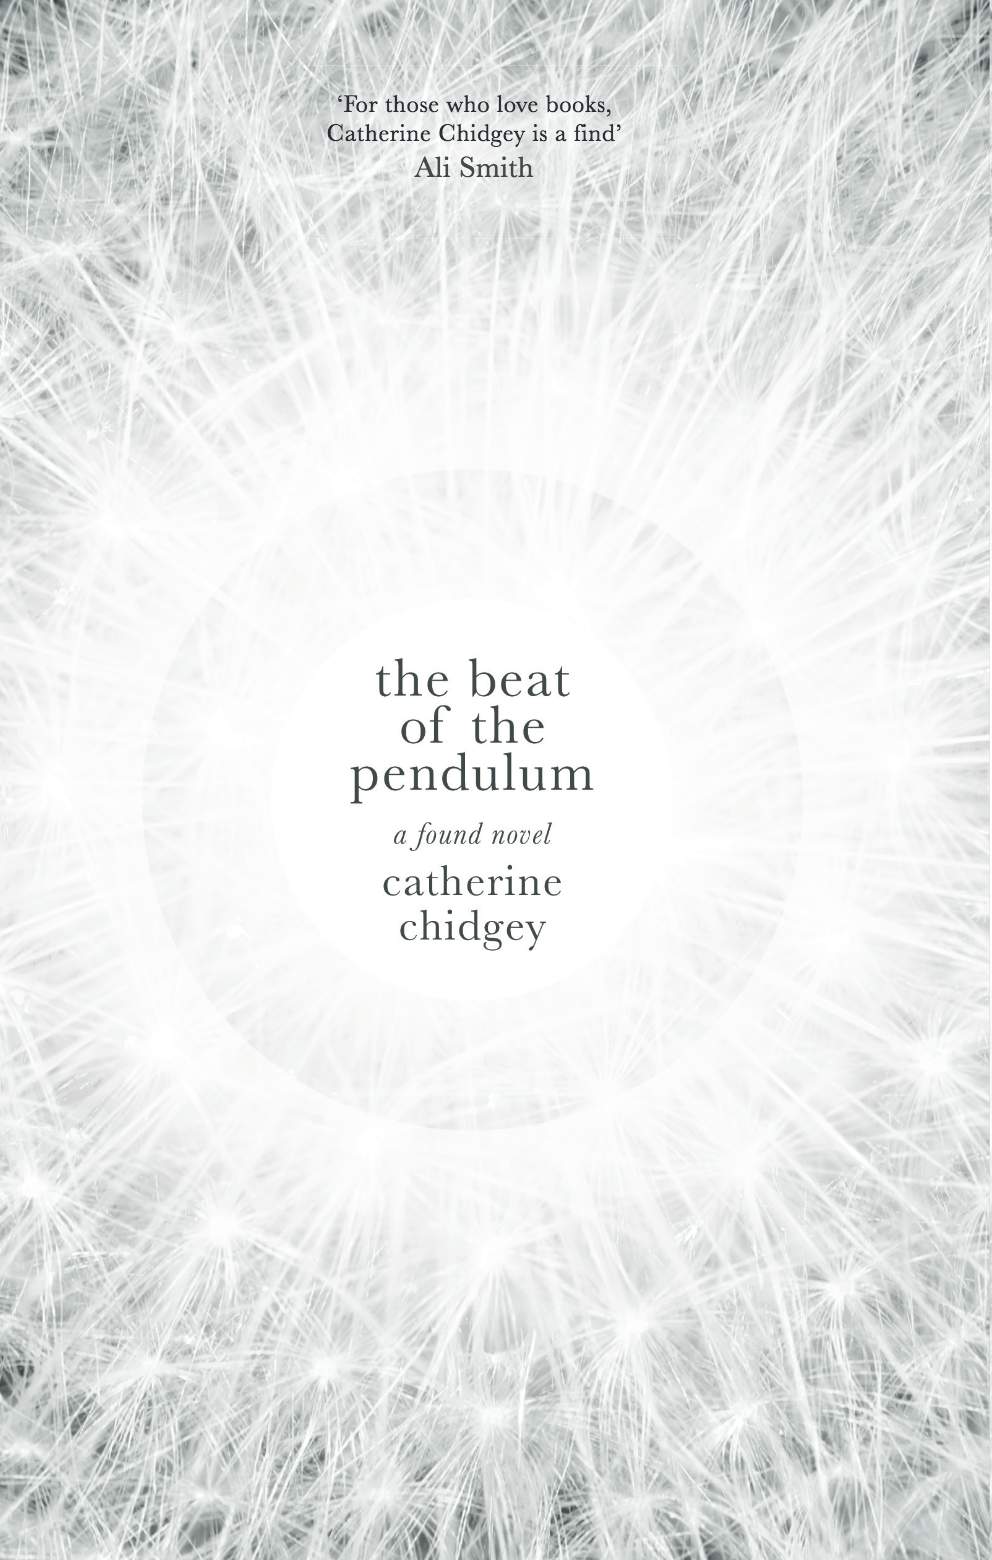 The Beat of the Pendulum by Catherine Chidgey | Eye Books